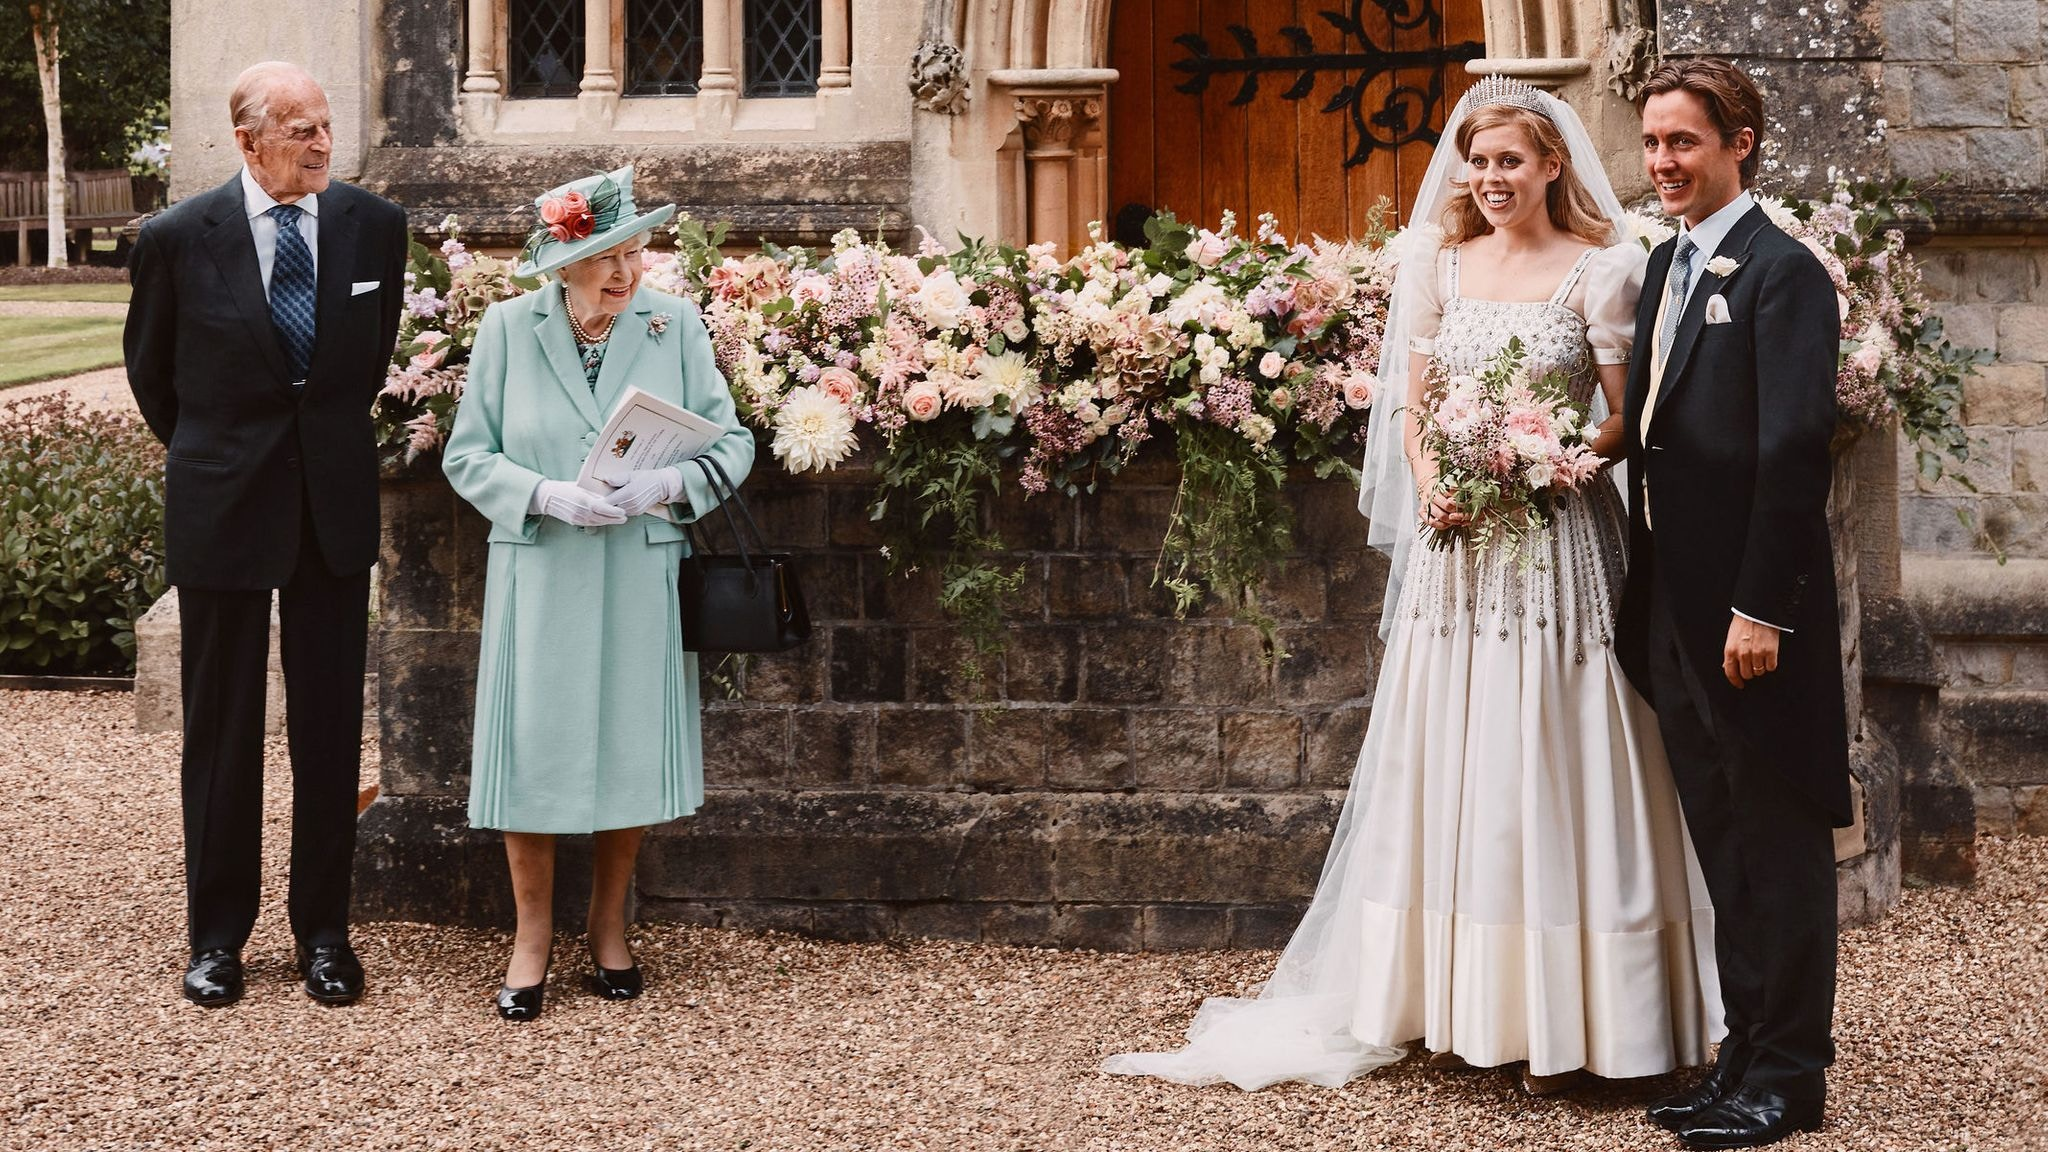 Queen Elizabeth and Prince Phillip stand socially distanced from the young bride and groom, Princess Beatrice of York and Edoardo Mapello Mozzi at their private ceremony in Windsor.